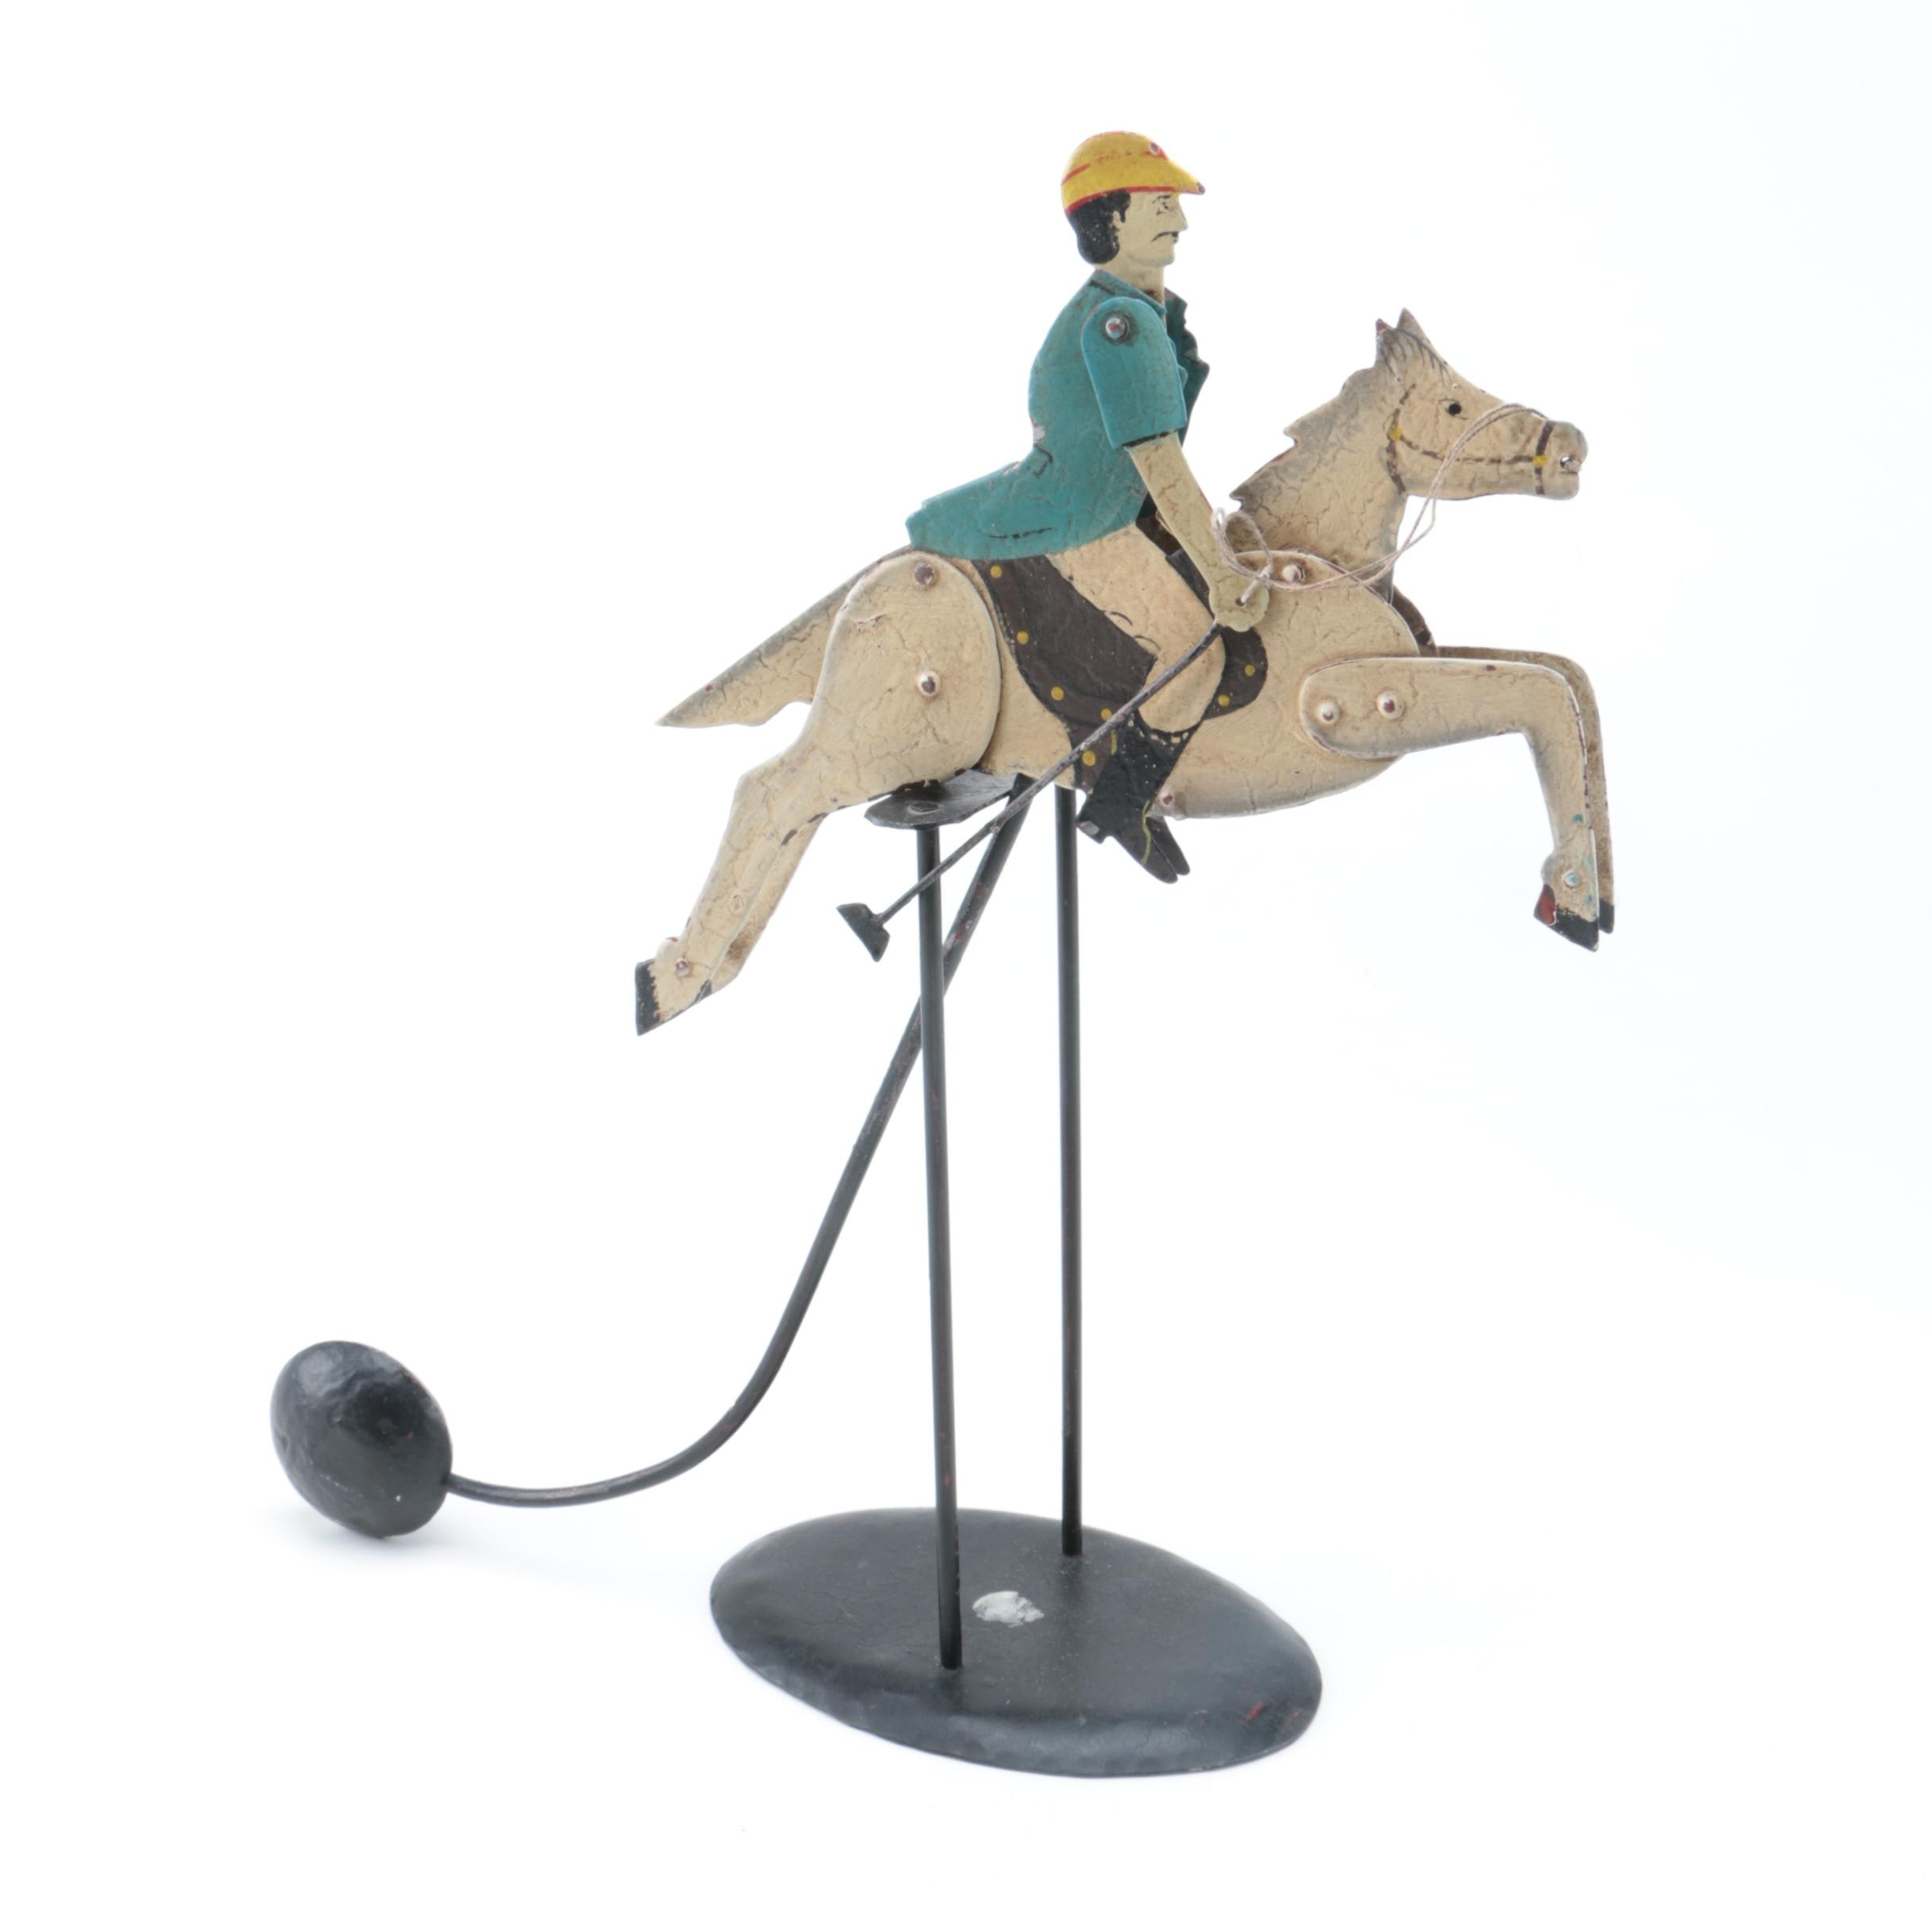 Peg Horse And Polo Rider Balance Sculpture And Stand